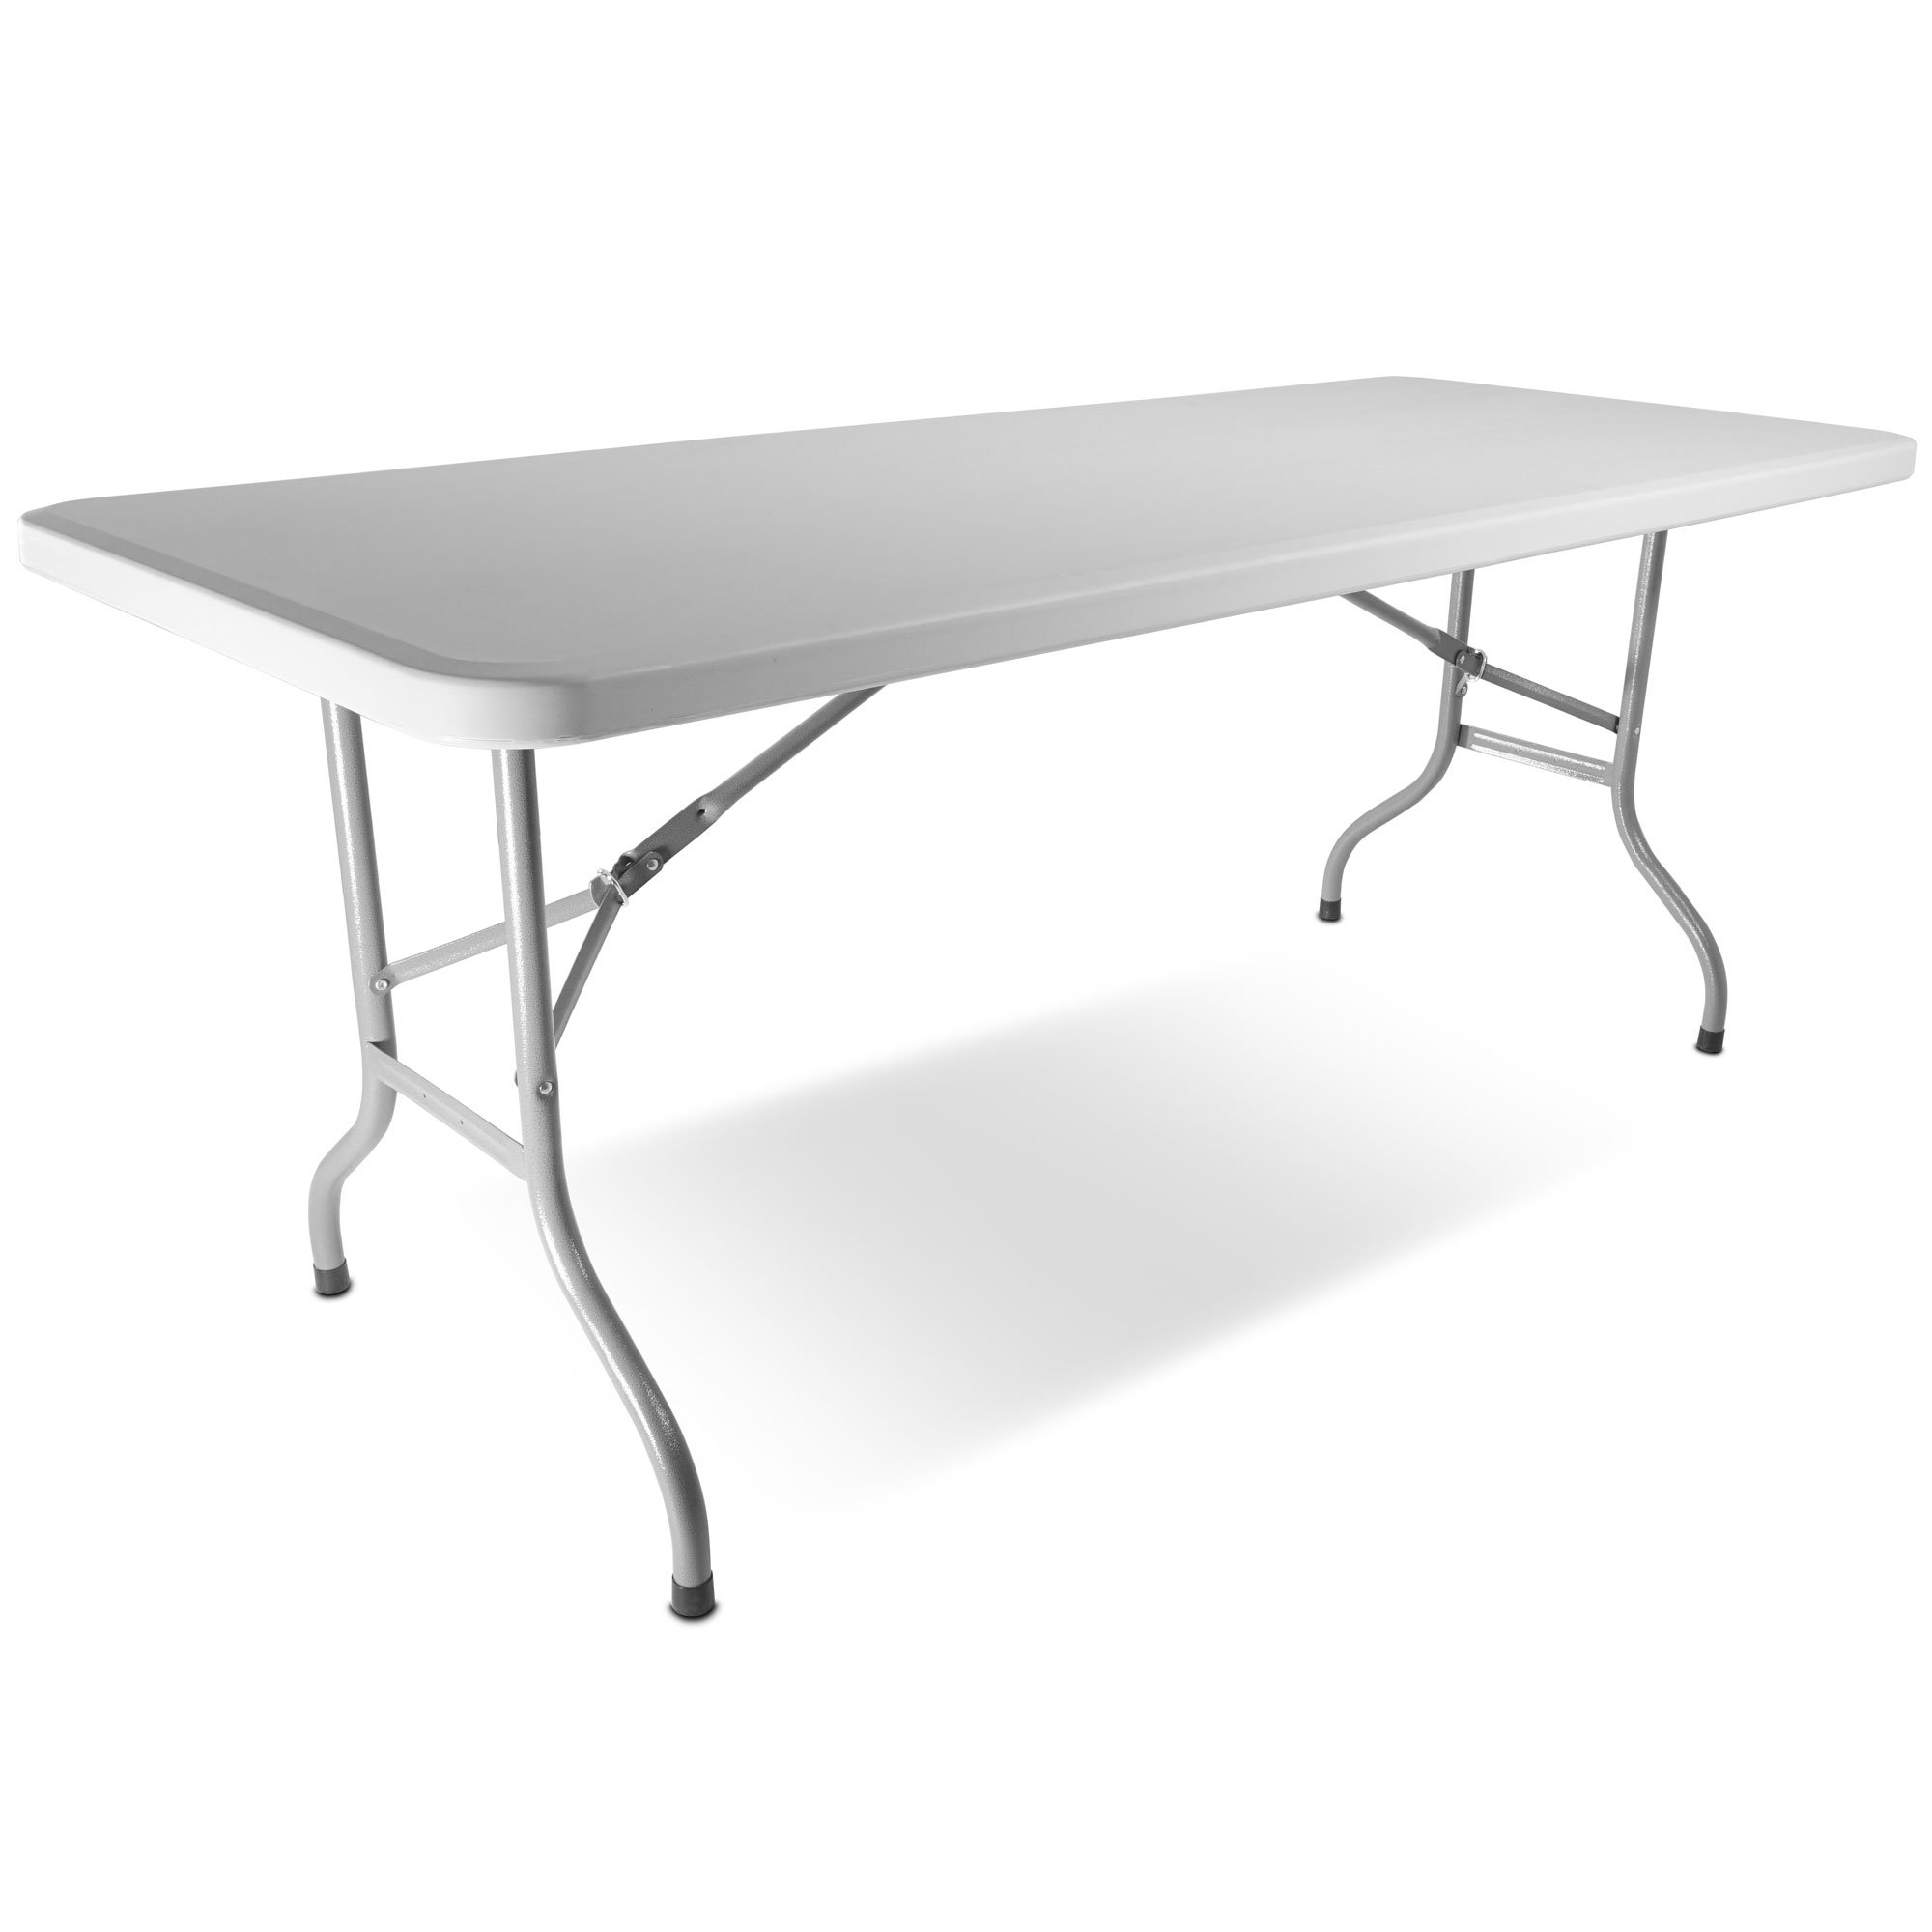 Titan 30'' x 72'' Folding Plastic Table Solid Rectangular Folding Legs 2.5' x 6' (2)